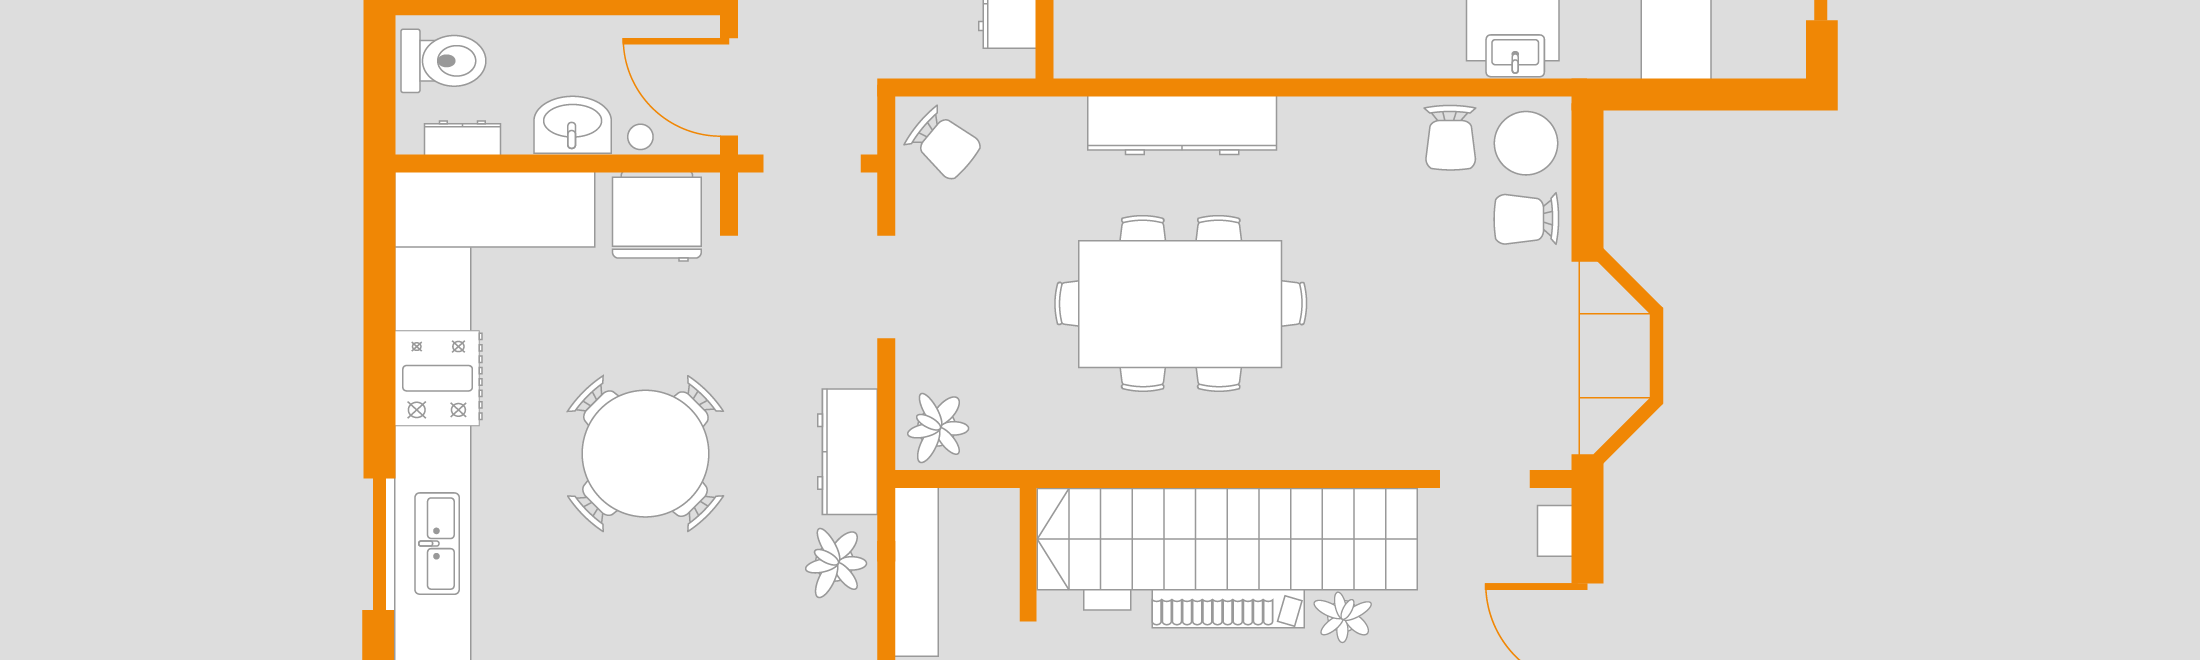 With draw.io you have the possibility to create your own floor plans.